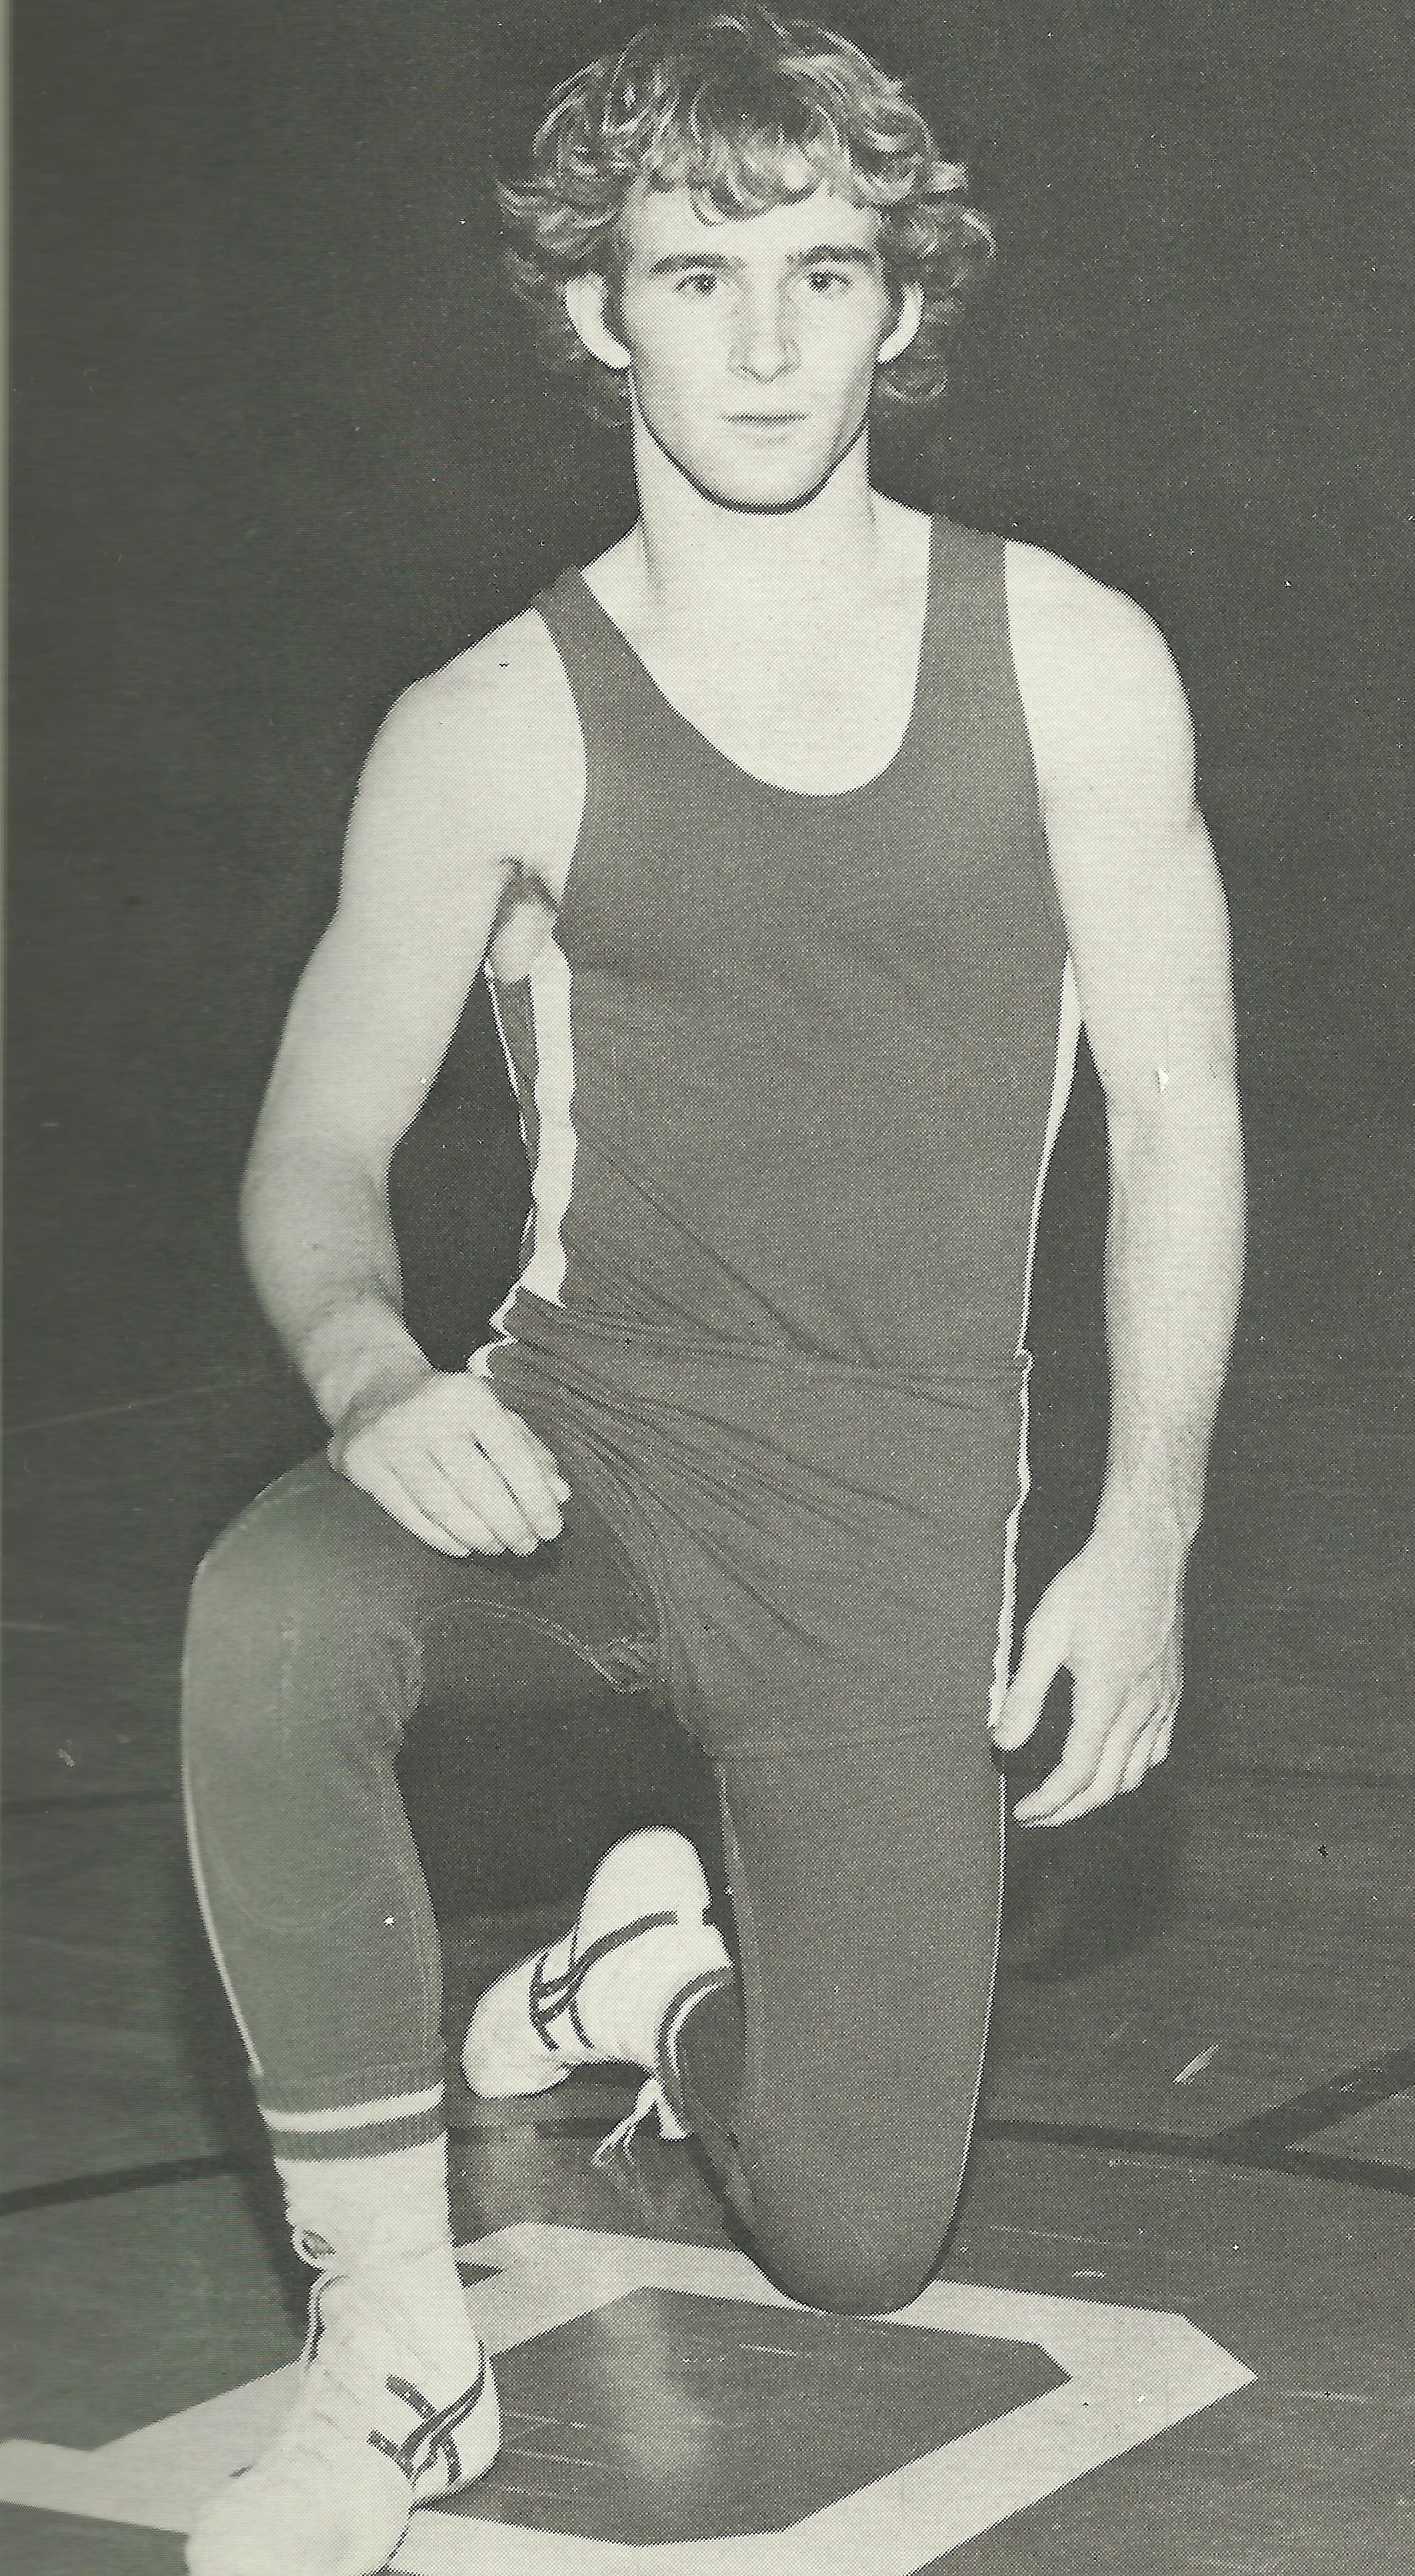 1974, 1975 STATE CHAMPION  Thom Herold, 132 Pounds